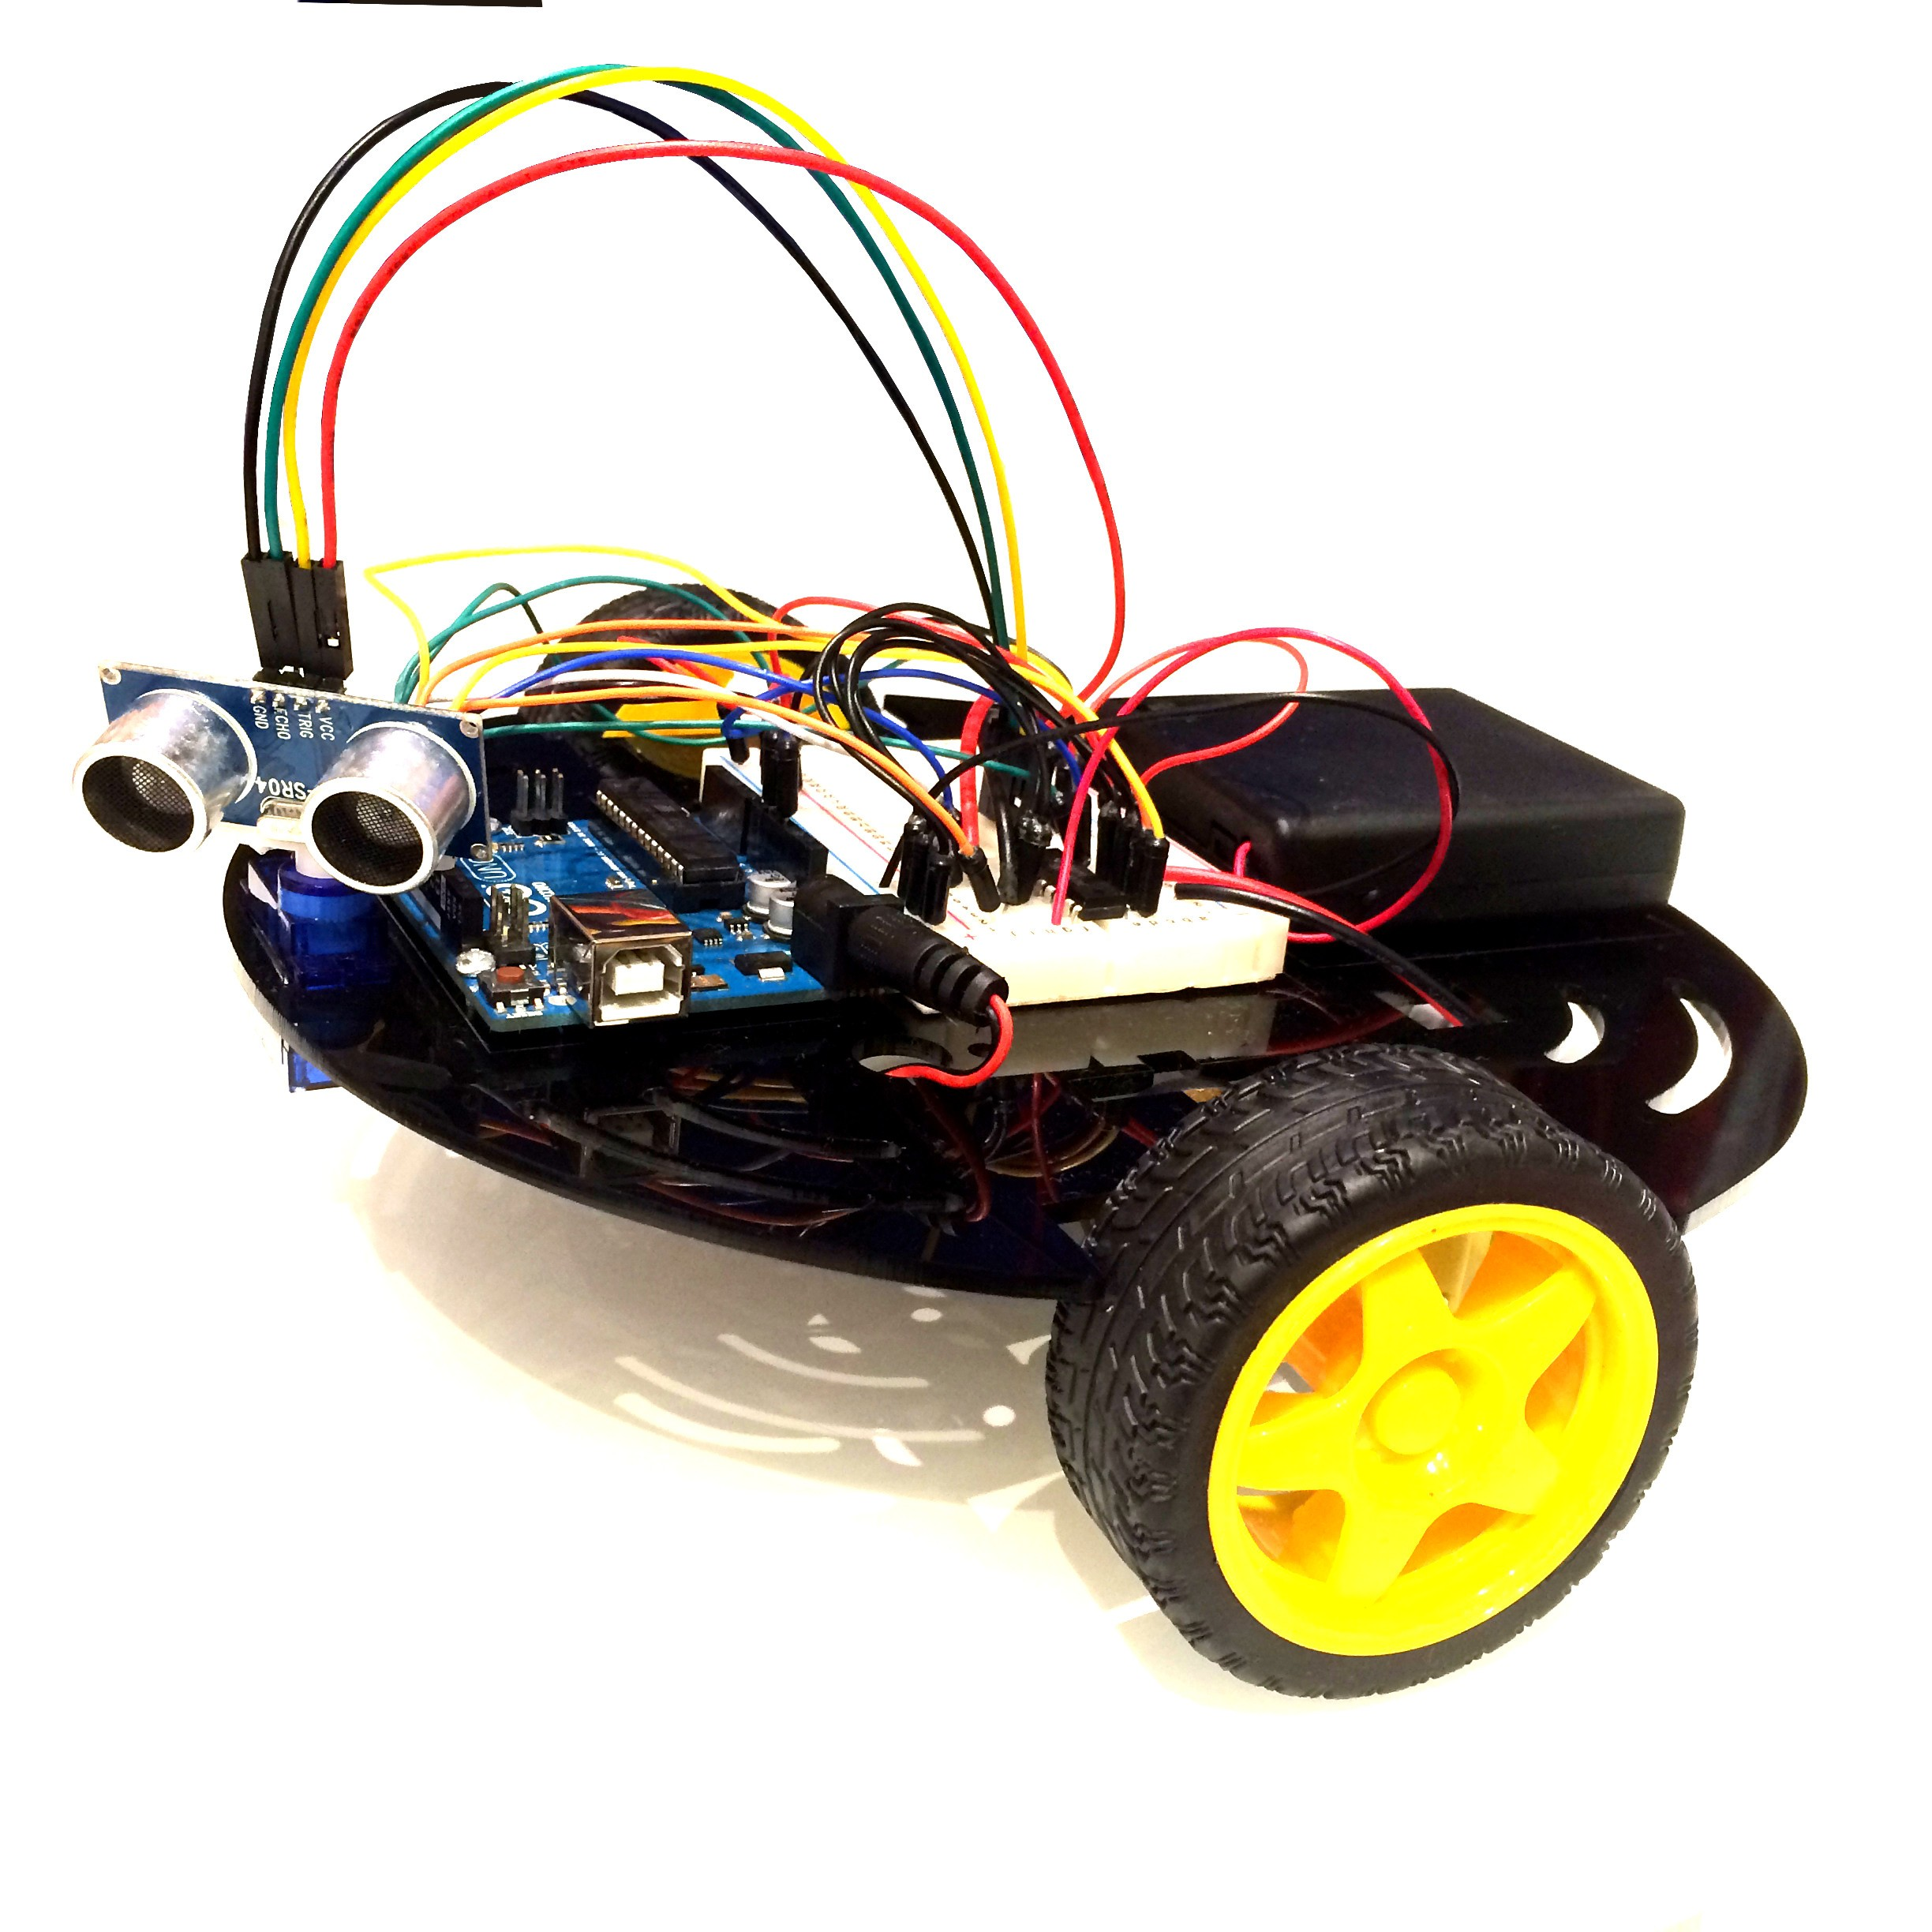 Arduino UNO Robot Kit: Complete With Electronics